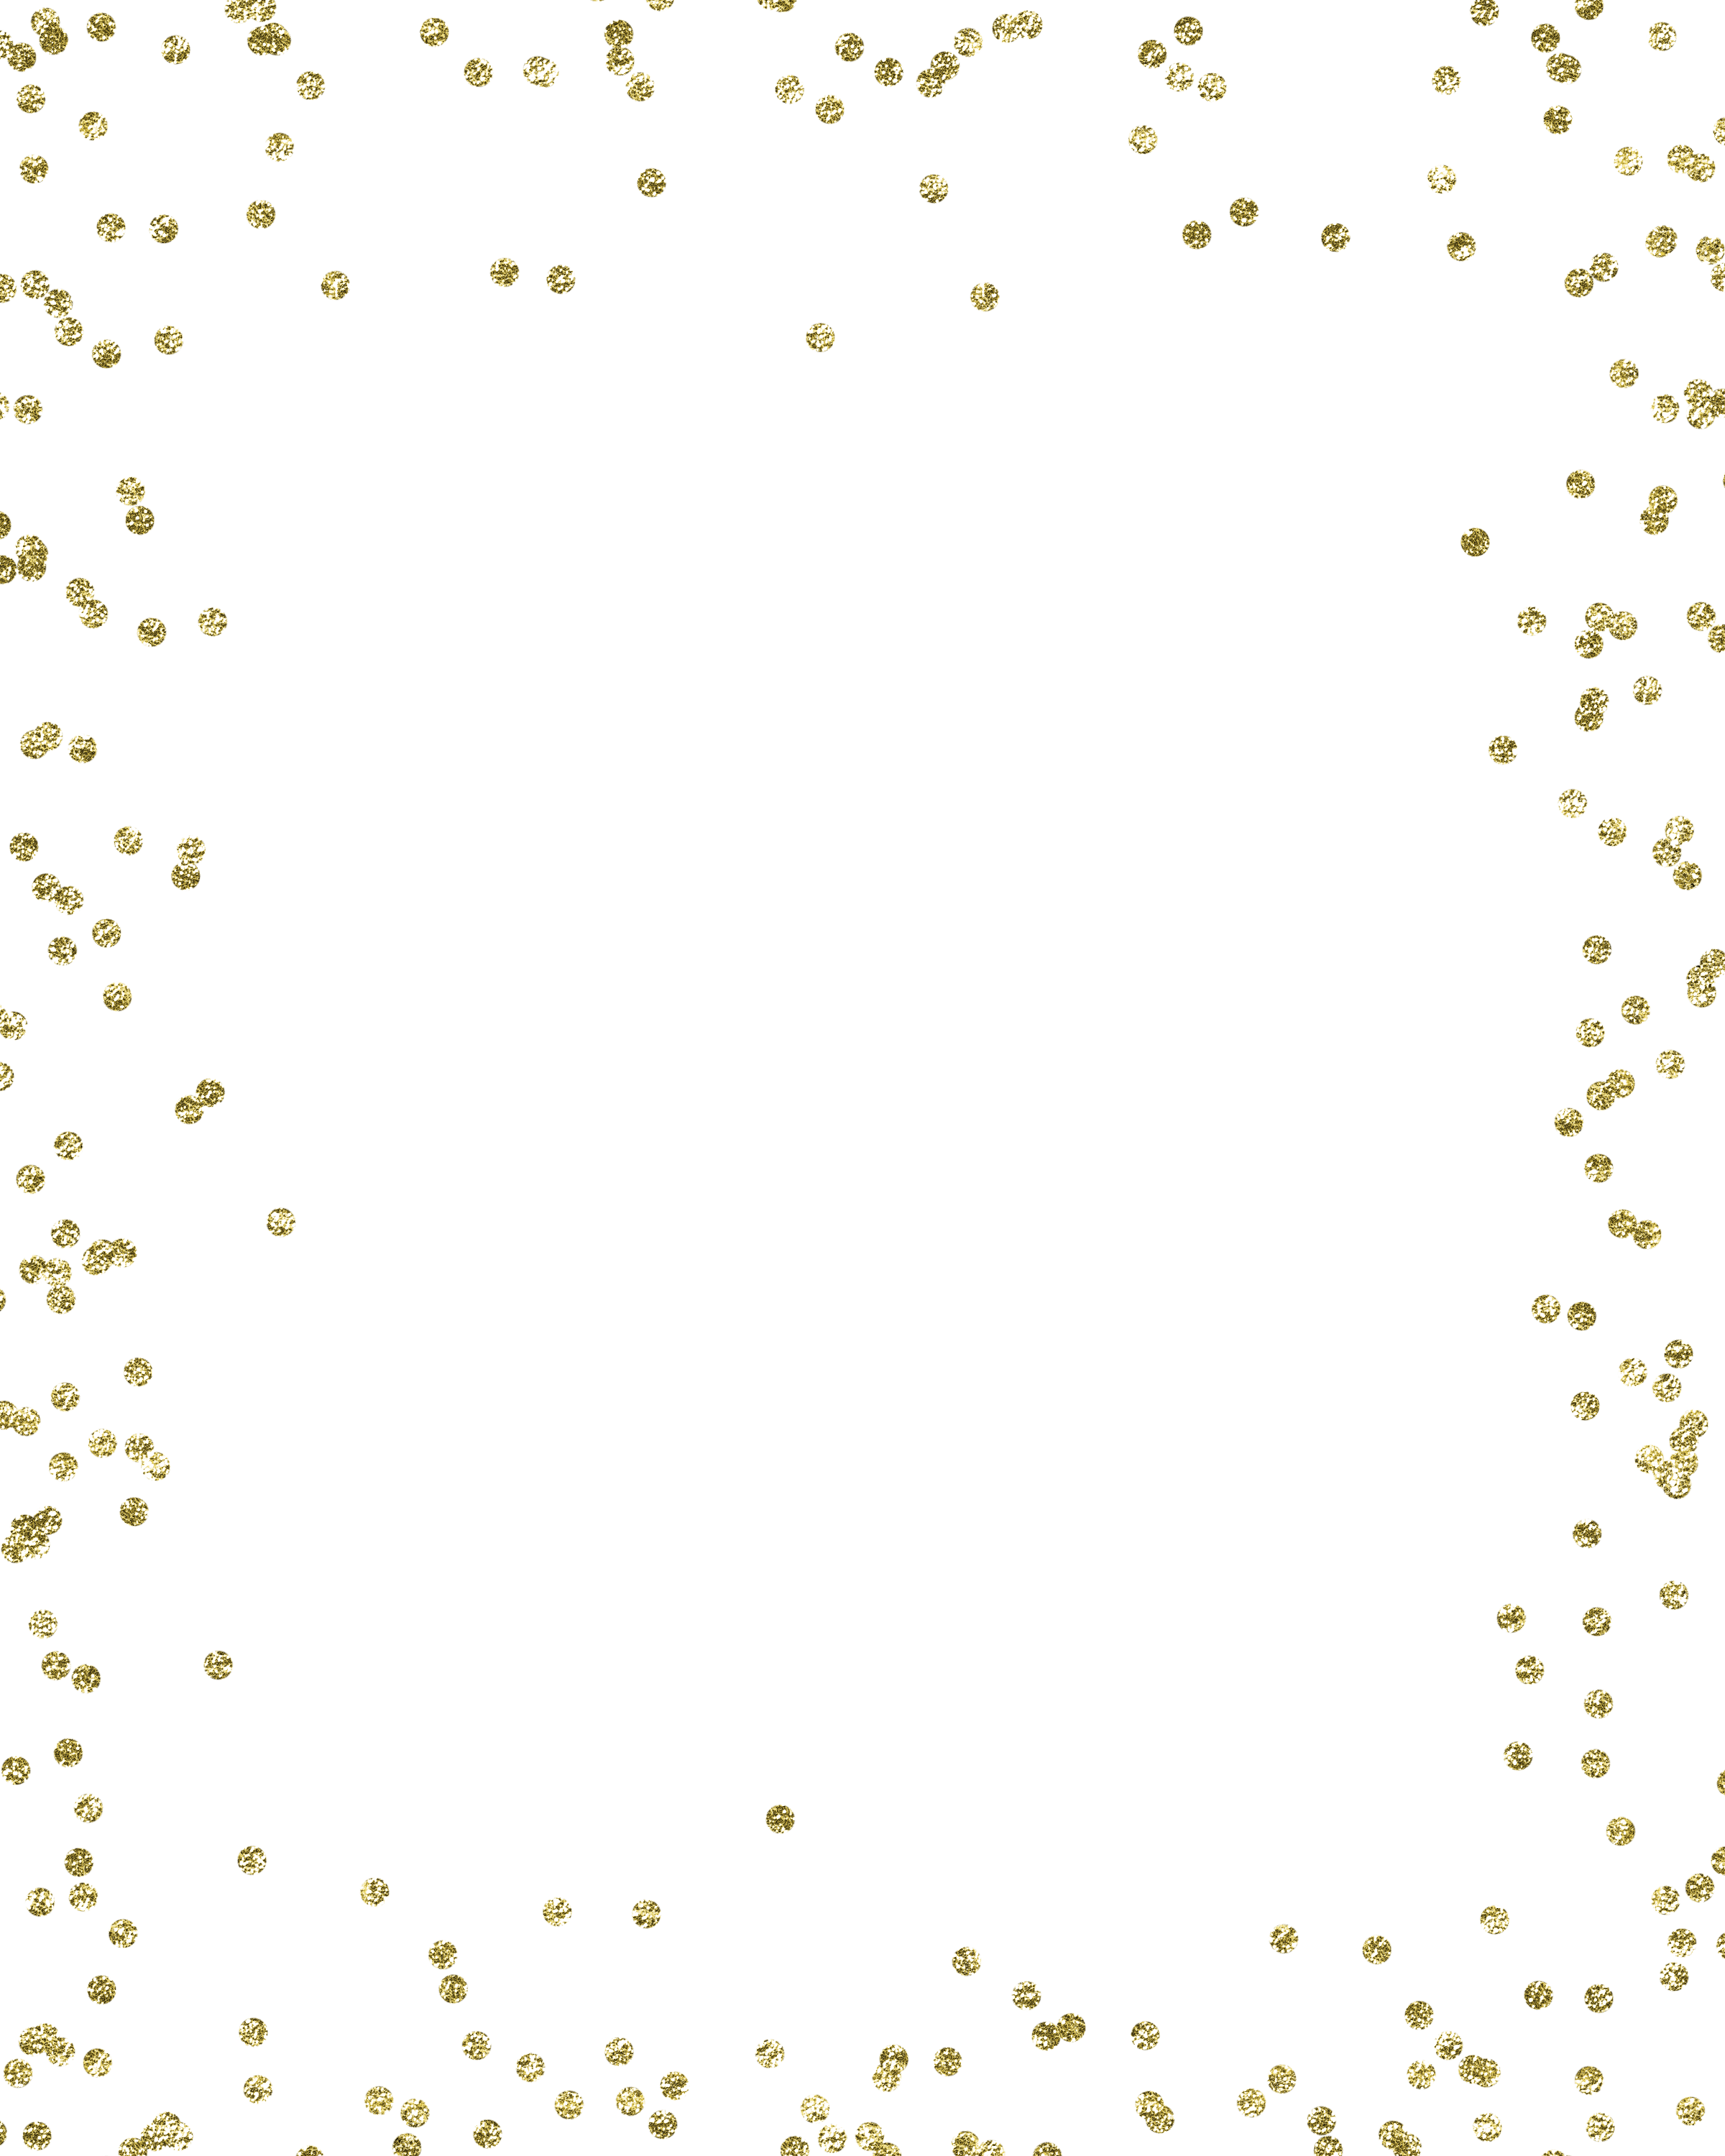 gold glitter, download confetti glitter gold png file clipart png #25162